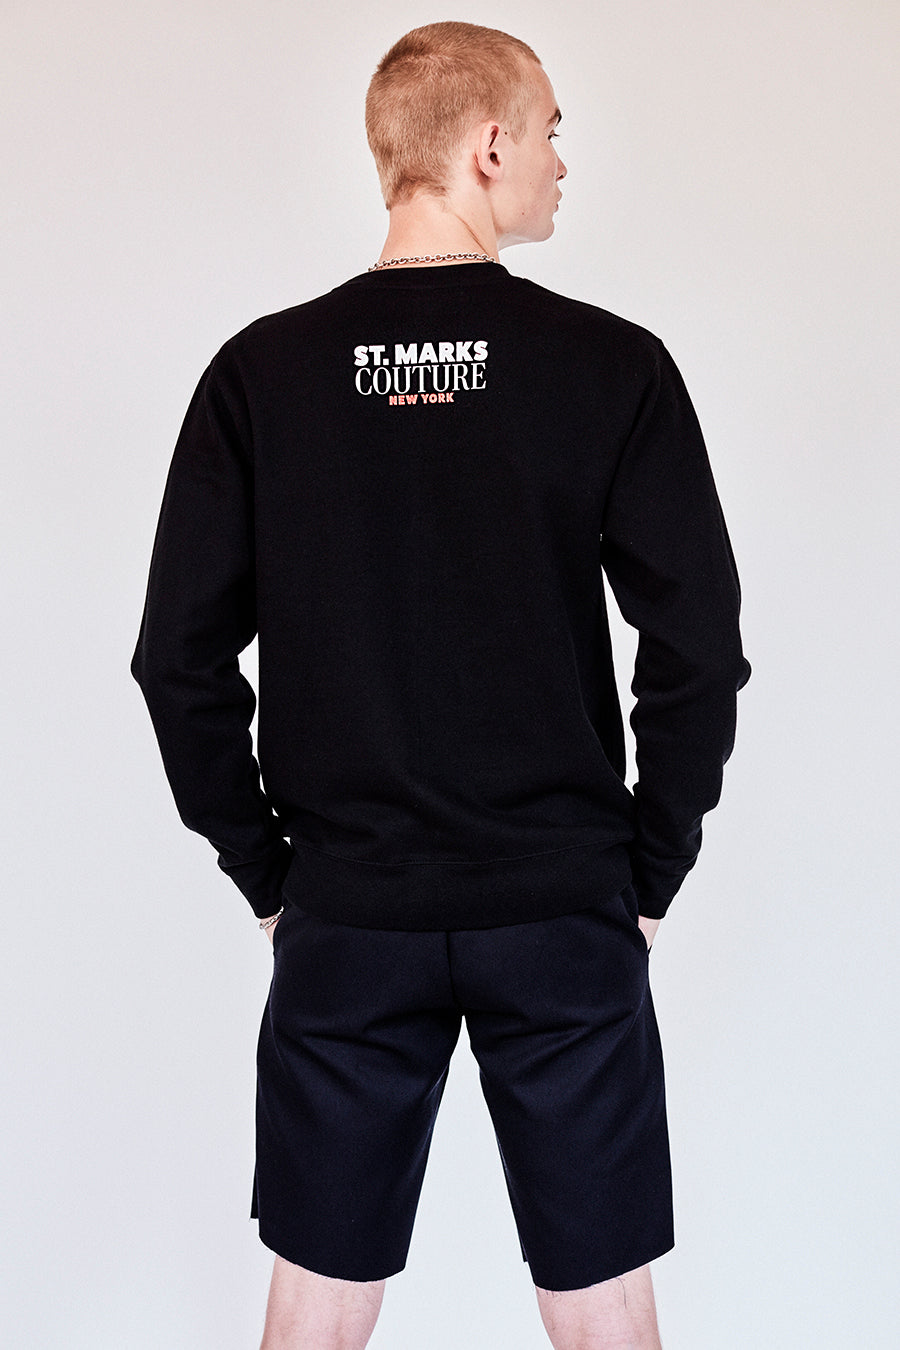 Brand New from New York City: Stmarksnewyork.com  Shop the St. Marks Street Sign Black Sweatshirt: Featuring St. Marks Street sign image on the front and St. Marks Couture New York logo on the back.  Hand silkscreen printed in New York with love.